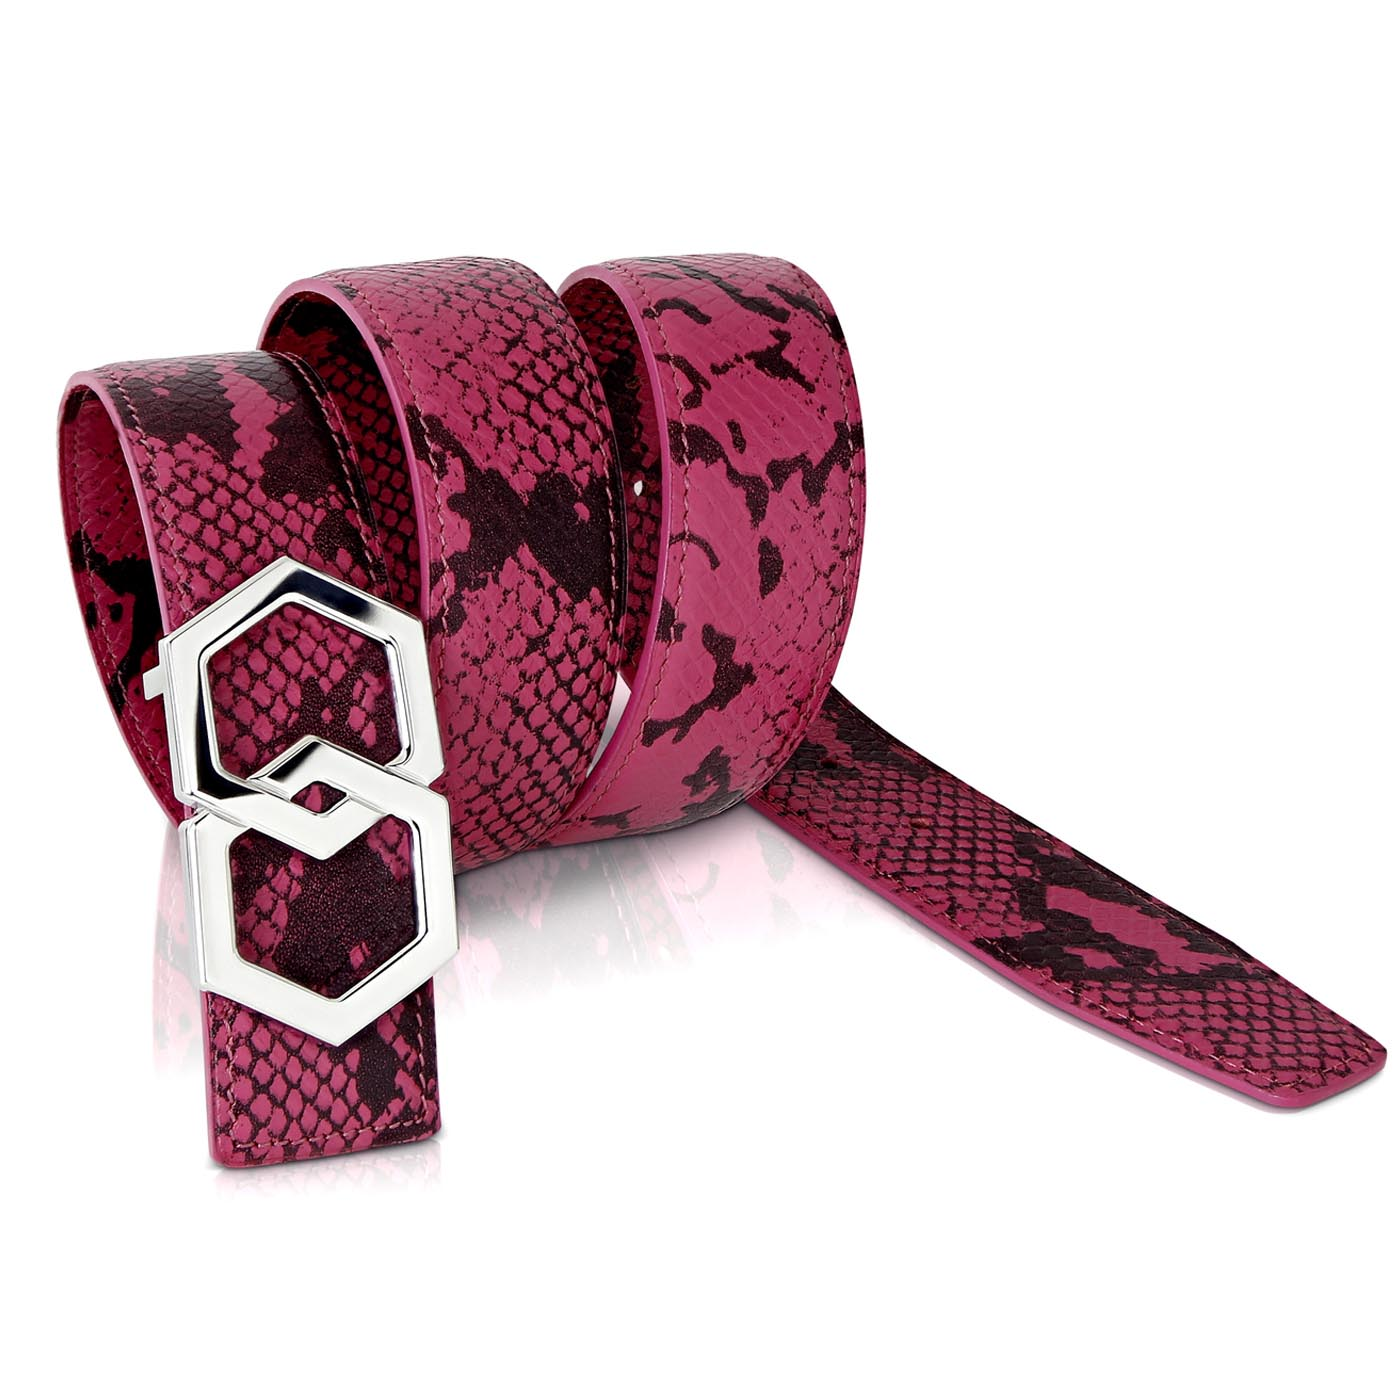 Metale Peligro Kingsnake Belt